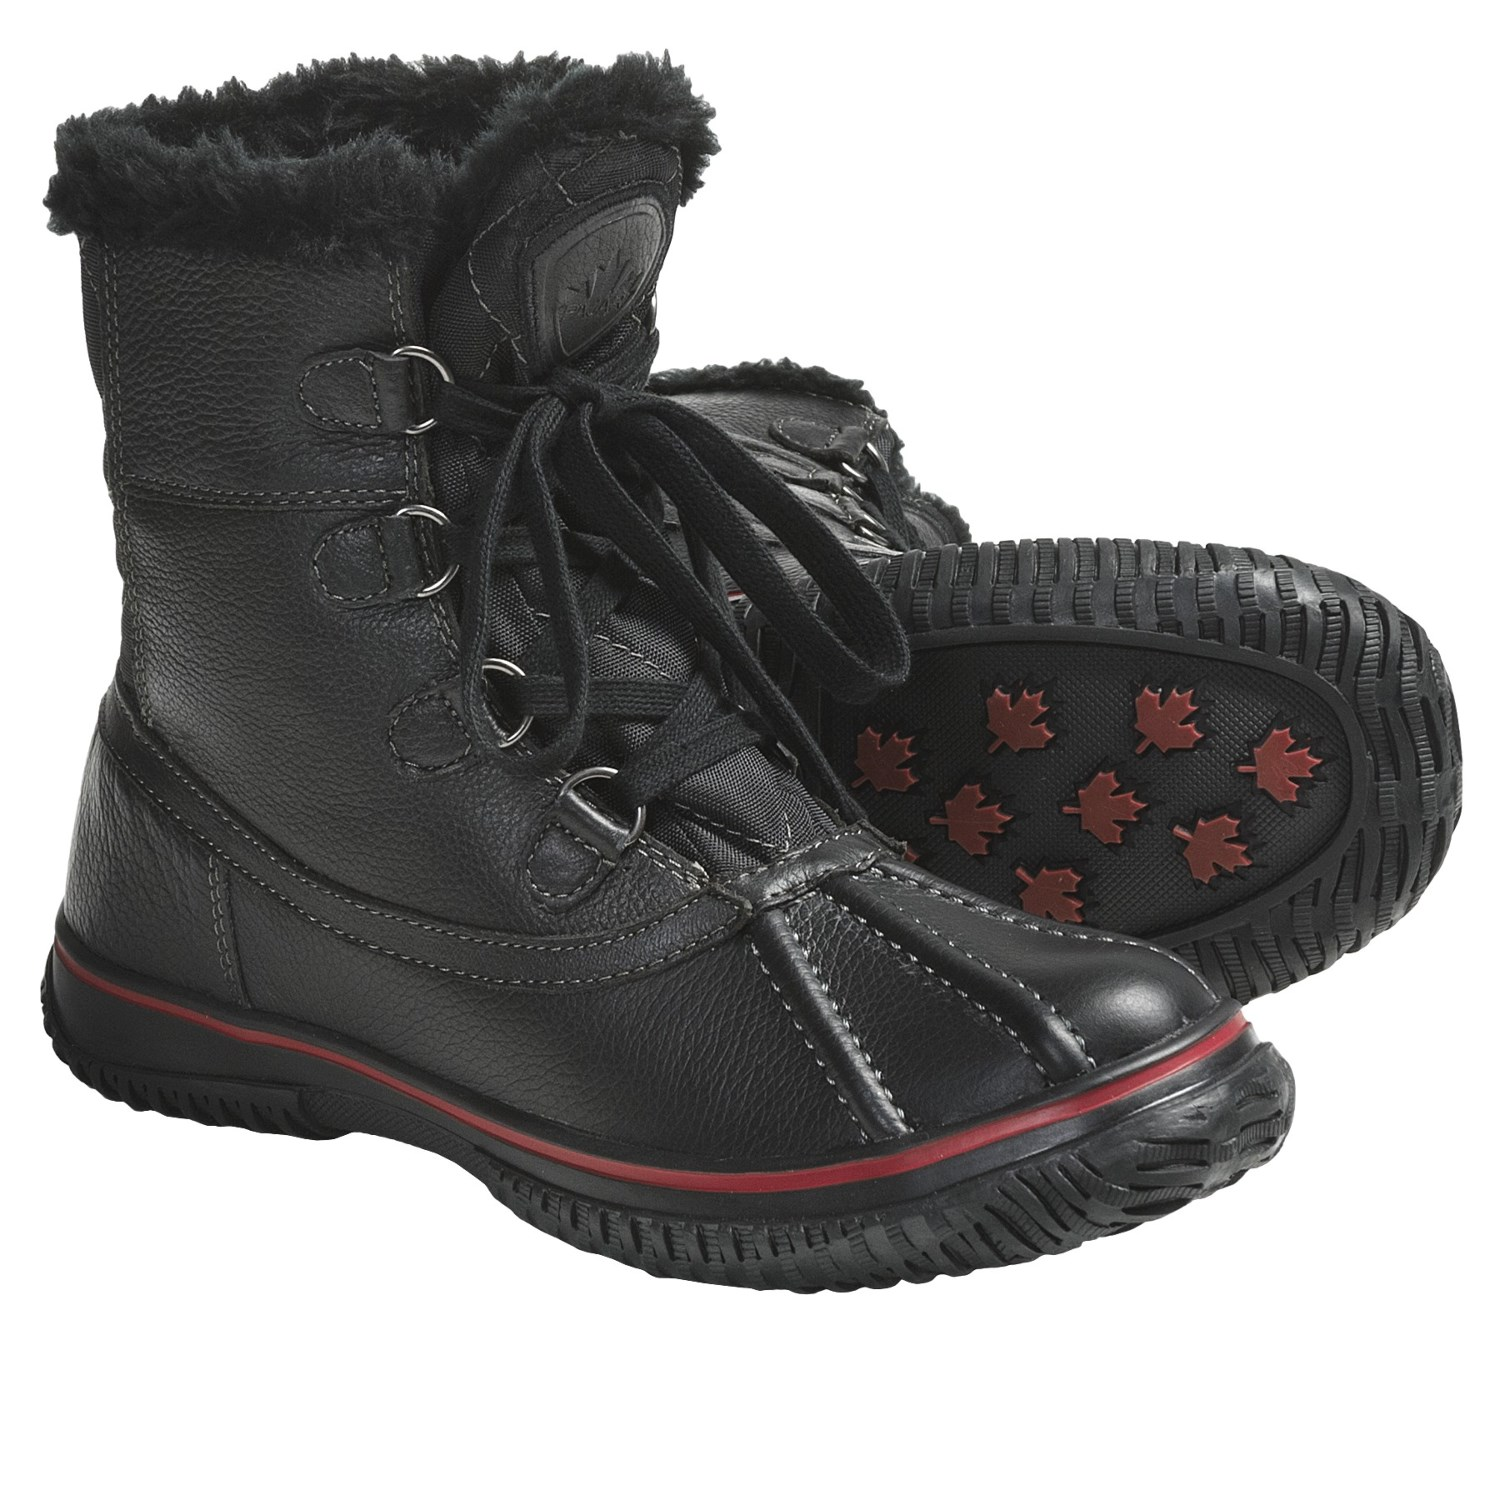 Pajar Ice Boots For Women 4706y Save 37